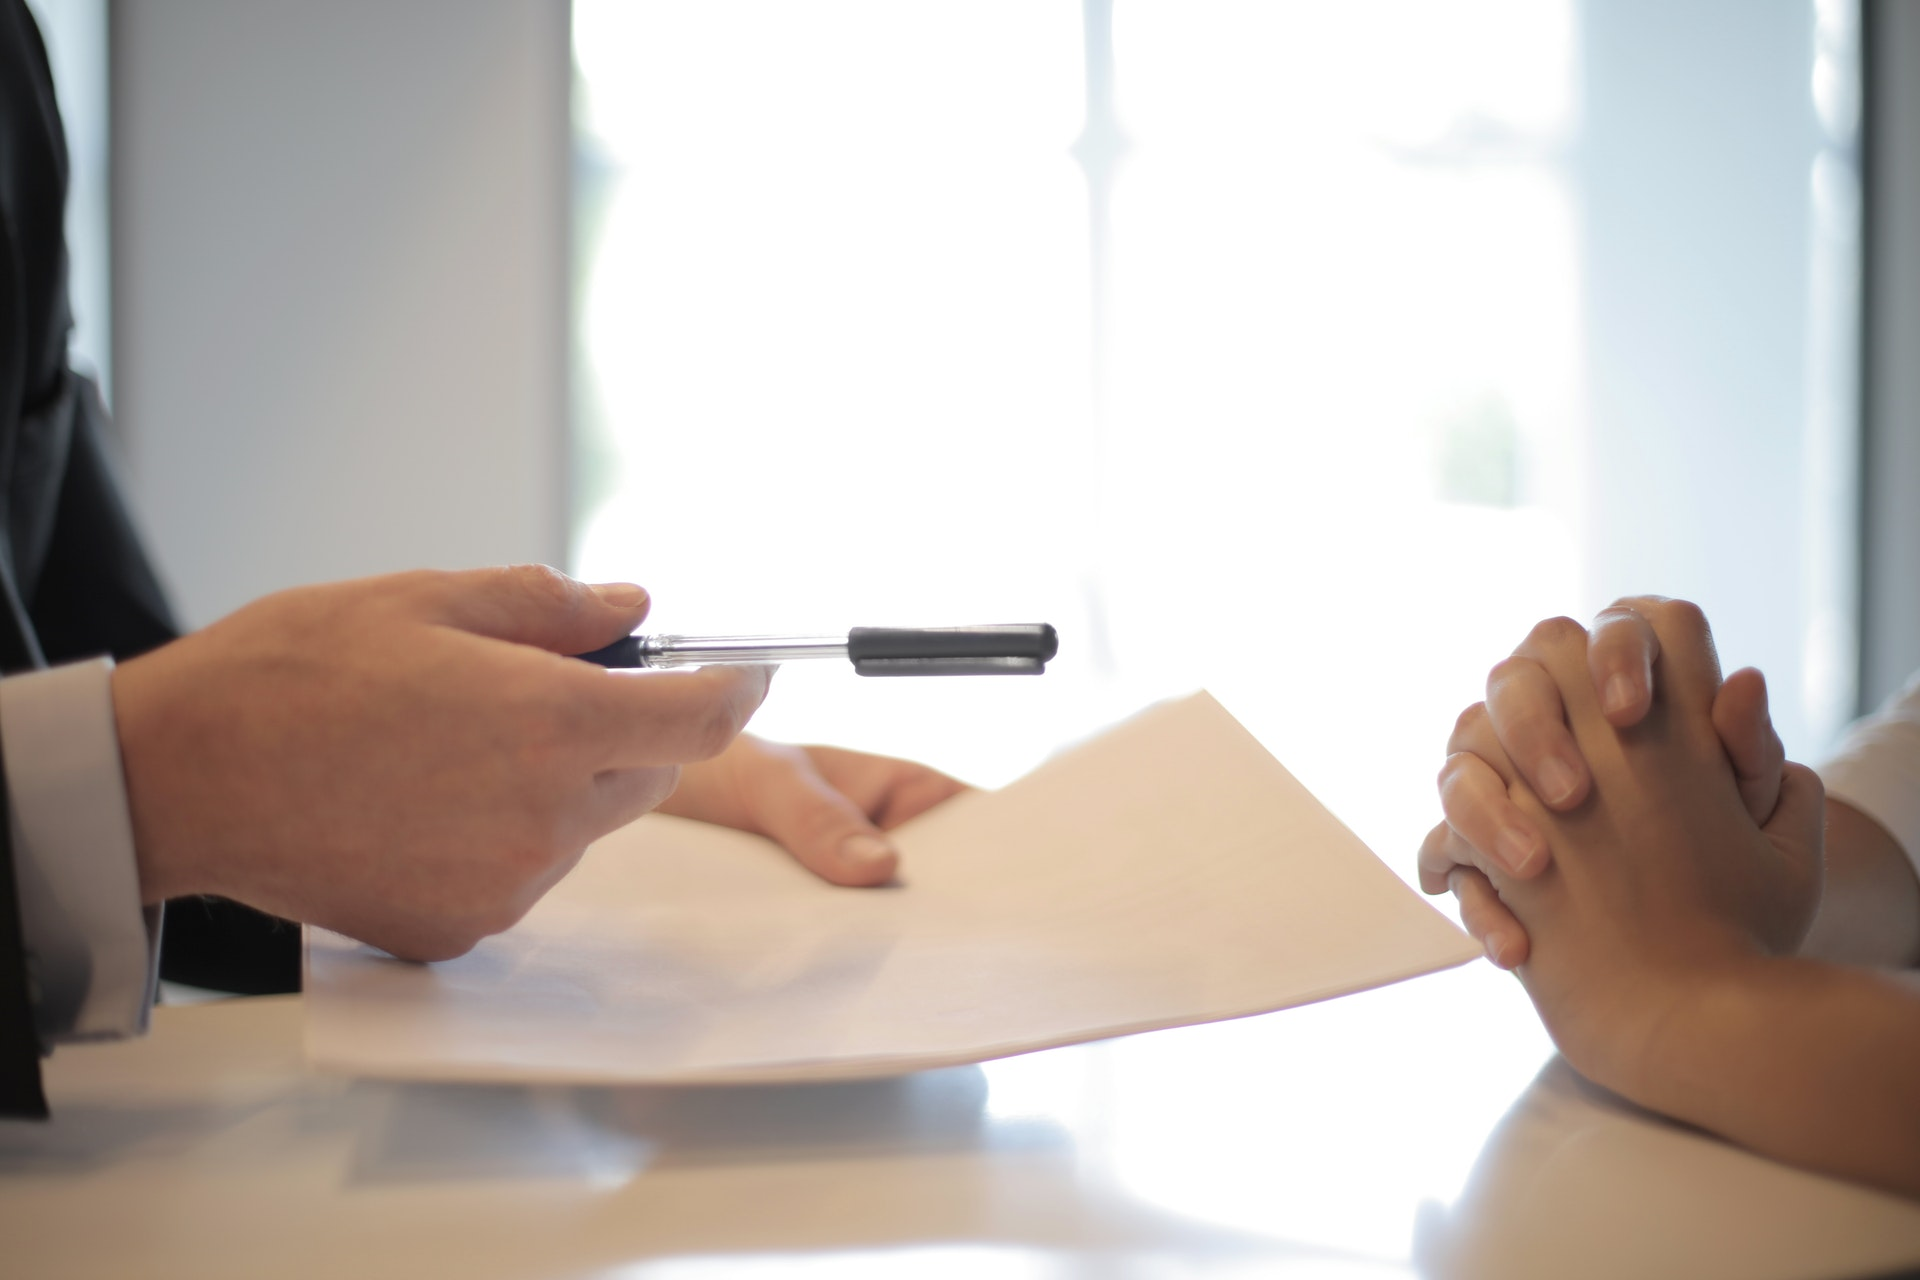 A person in business clothes holding a pen and paper sits across from someone with folded hands.